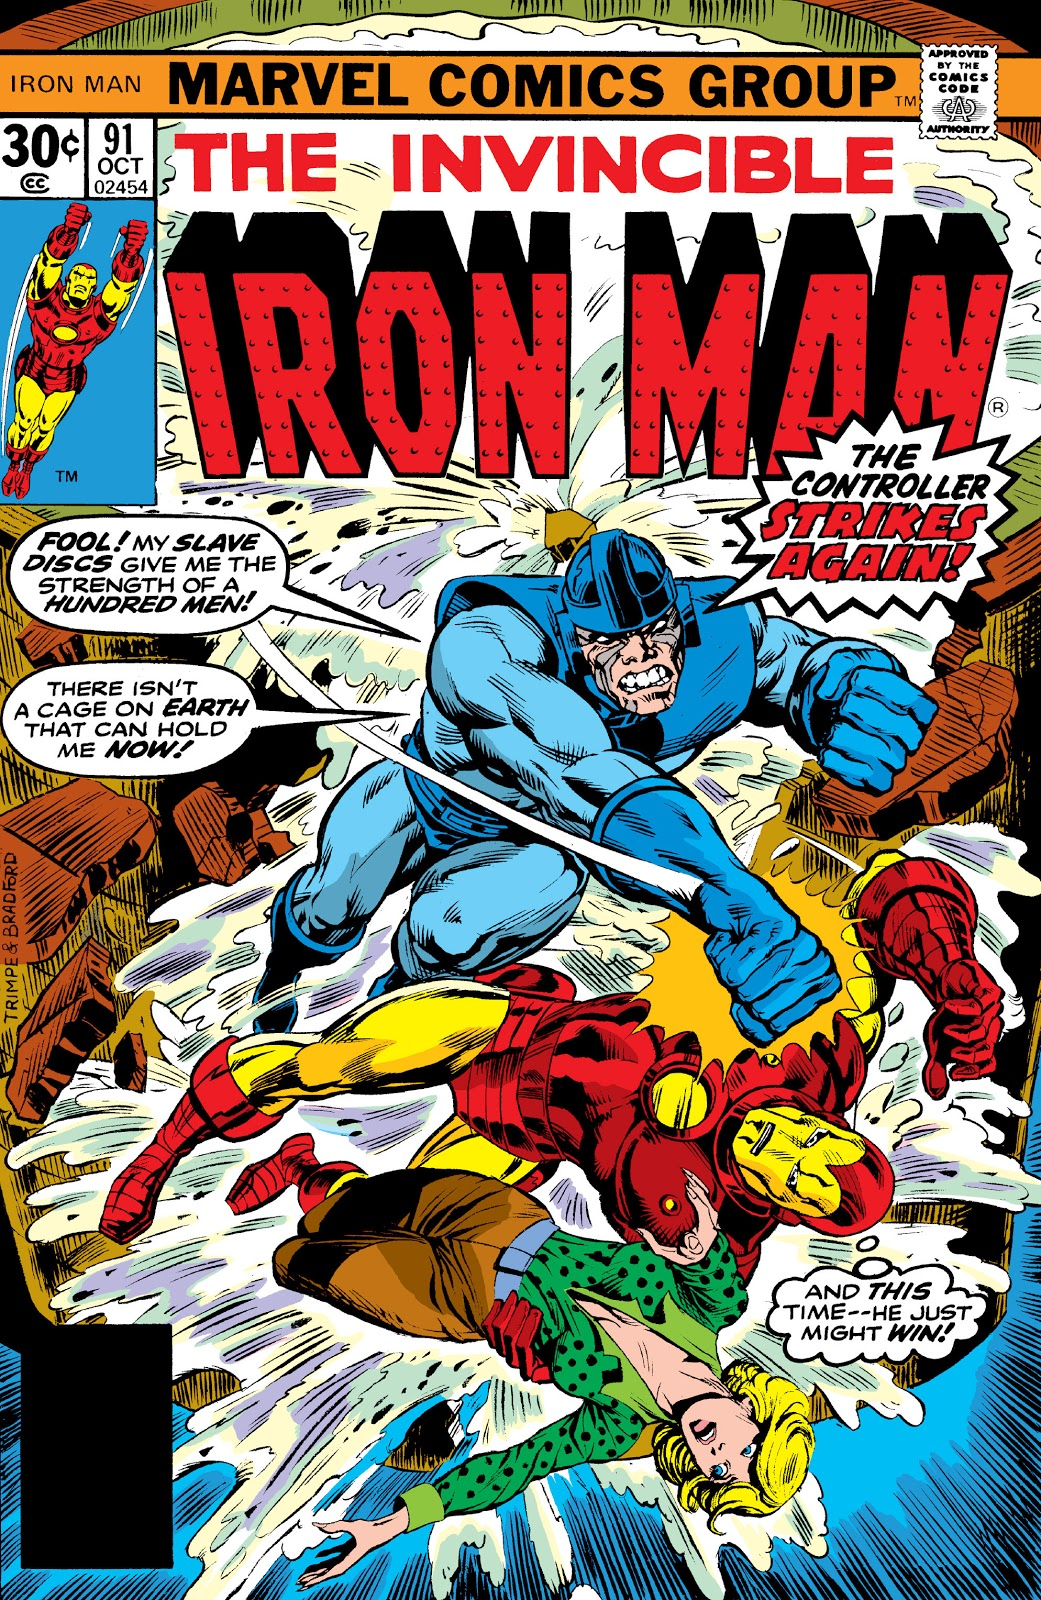 Iron Man Vol 1 91